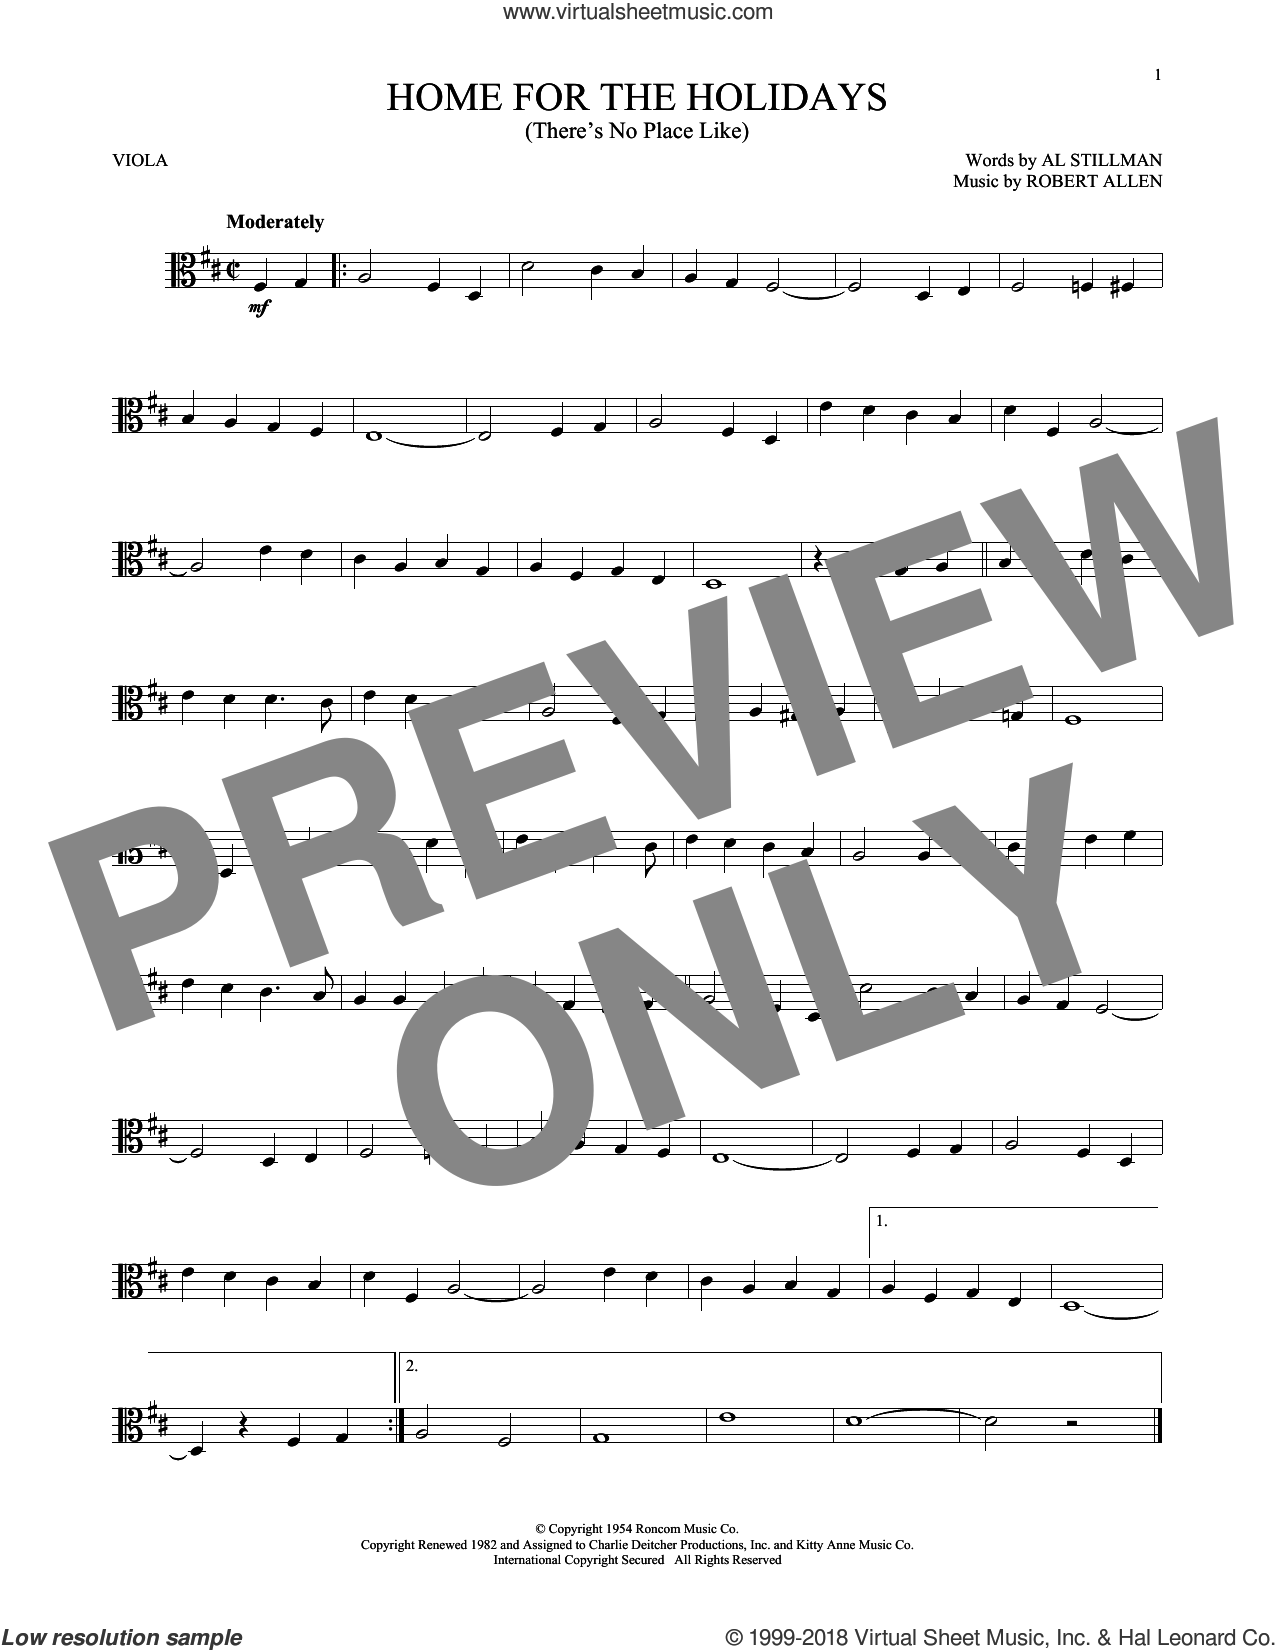 (There's No Place Like) Home For The Holidays sheet music for viola solo by Perry Como, Al Stillman and Robert Allen, intermediate skill level